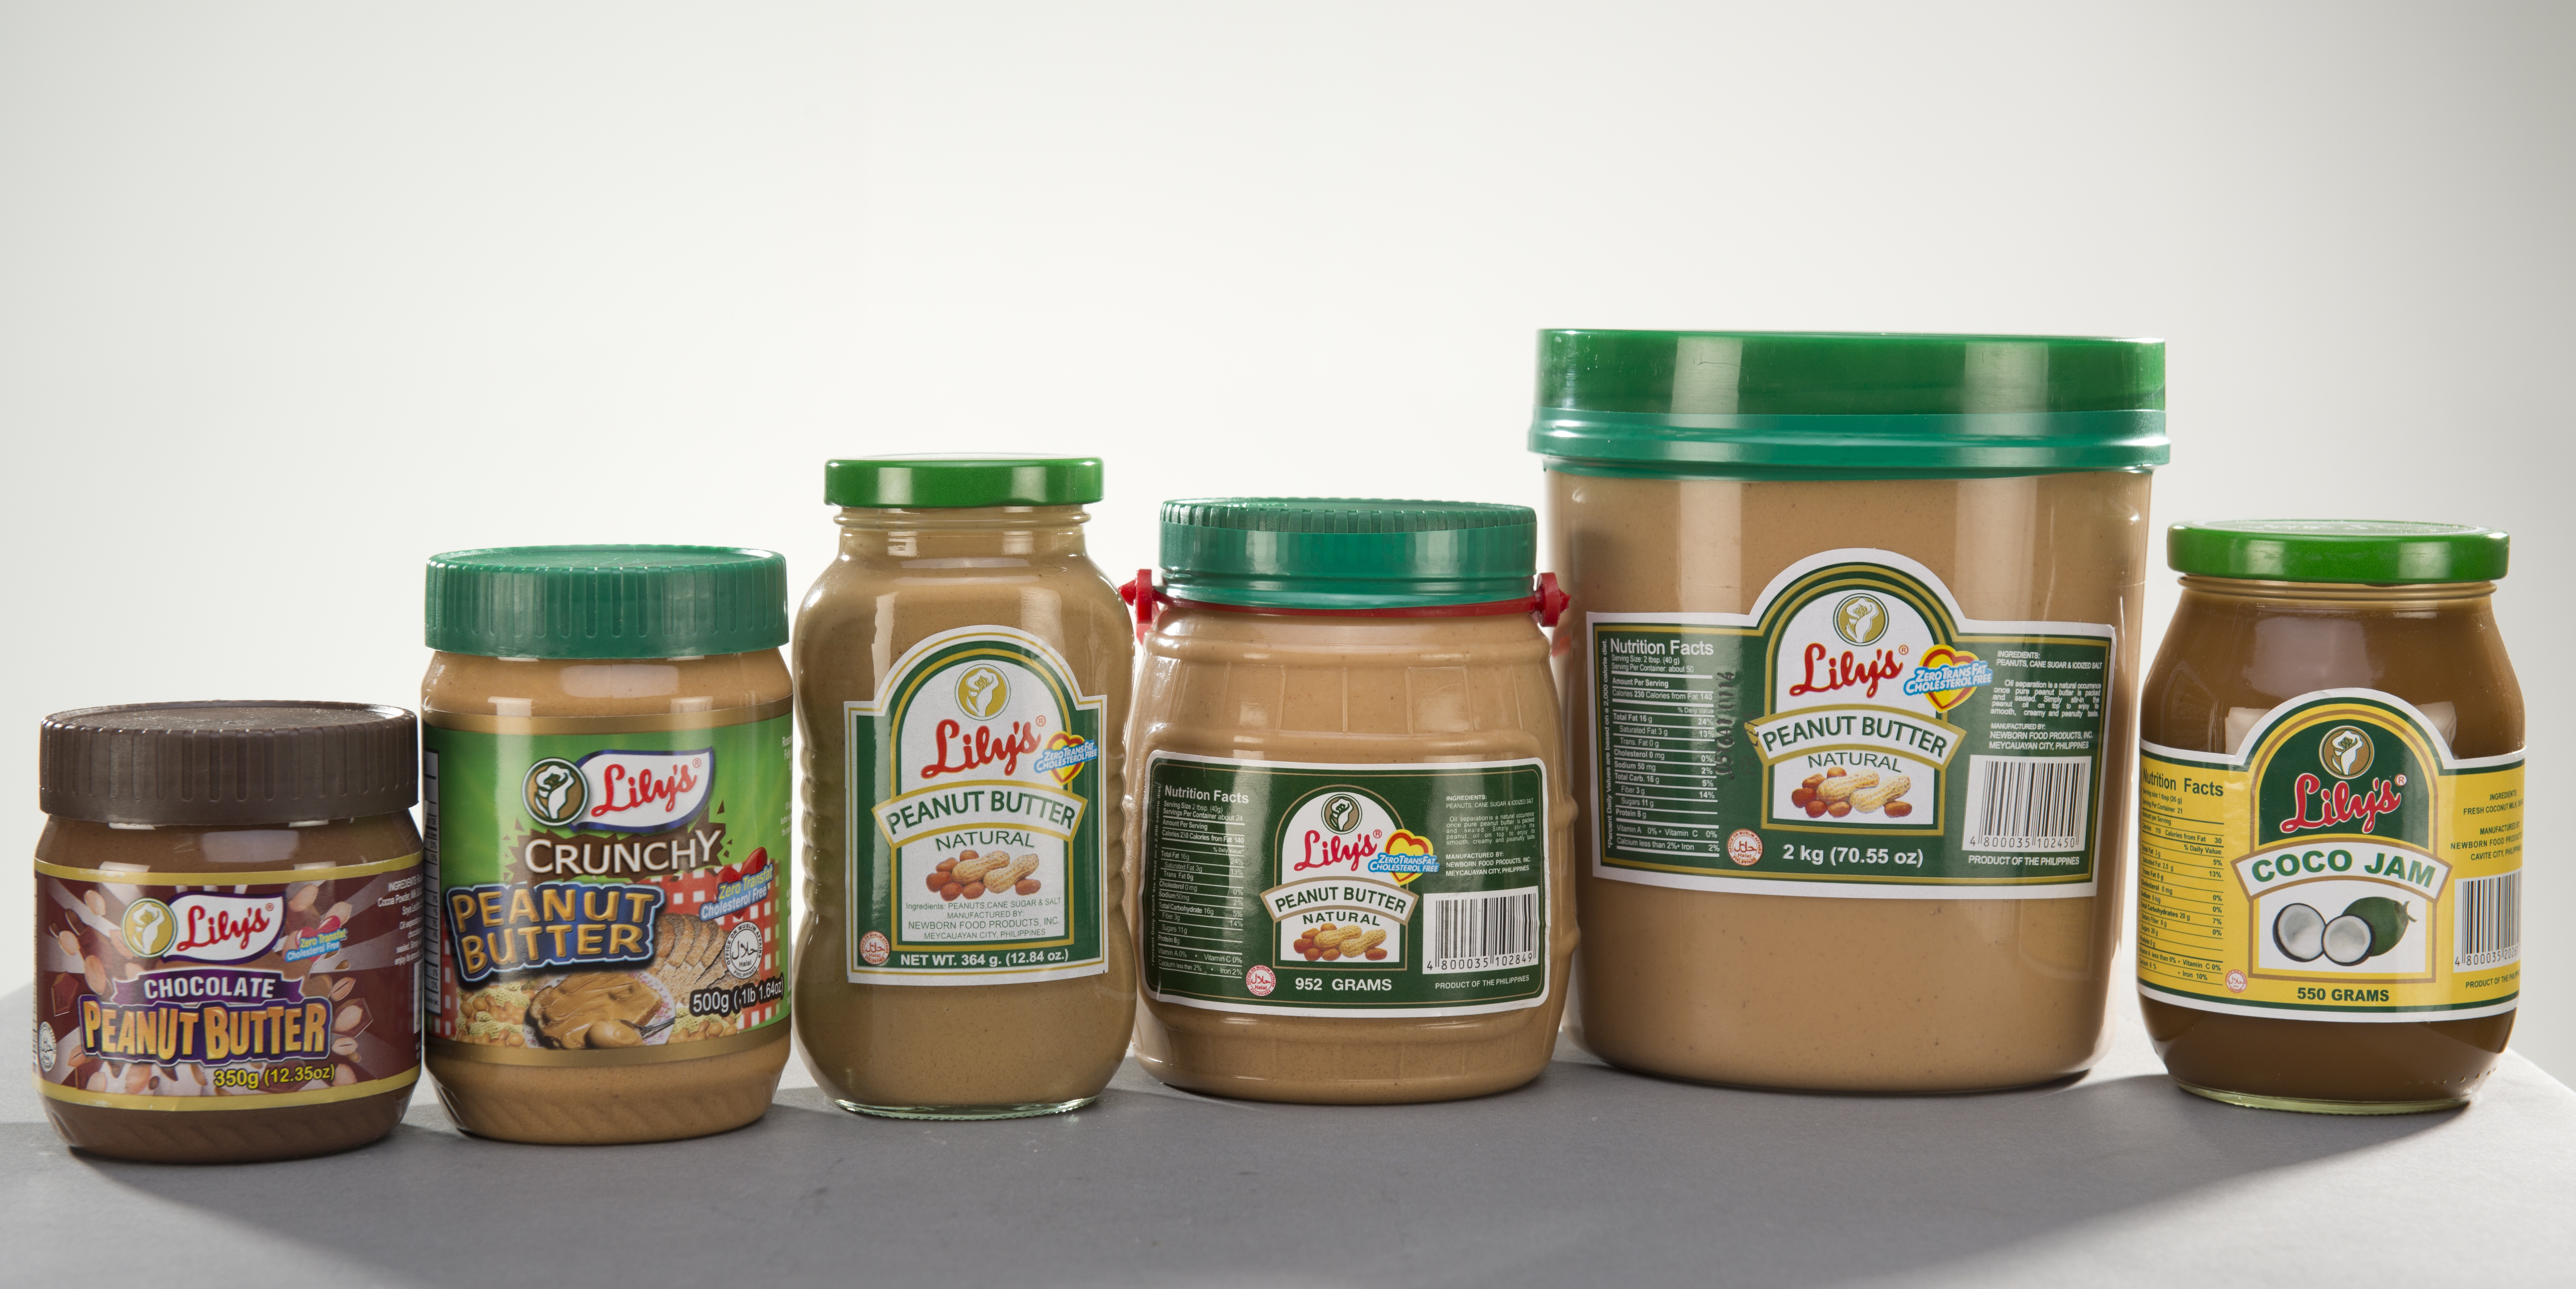 Peanut Butter Brands In The Philippines Image Gallery - HCPR